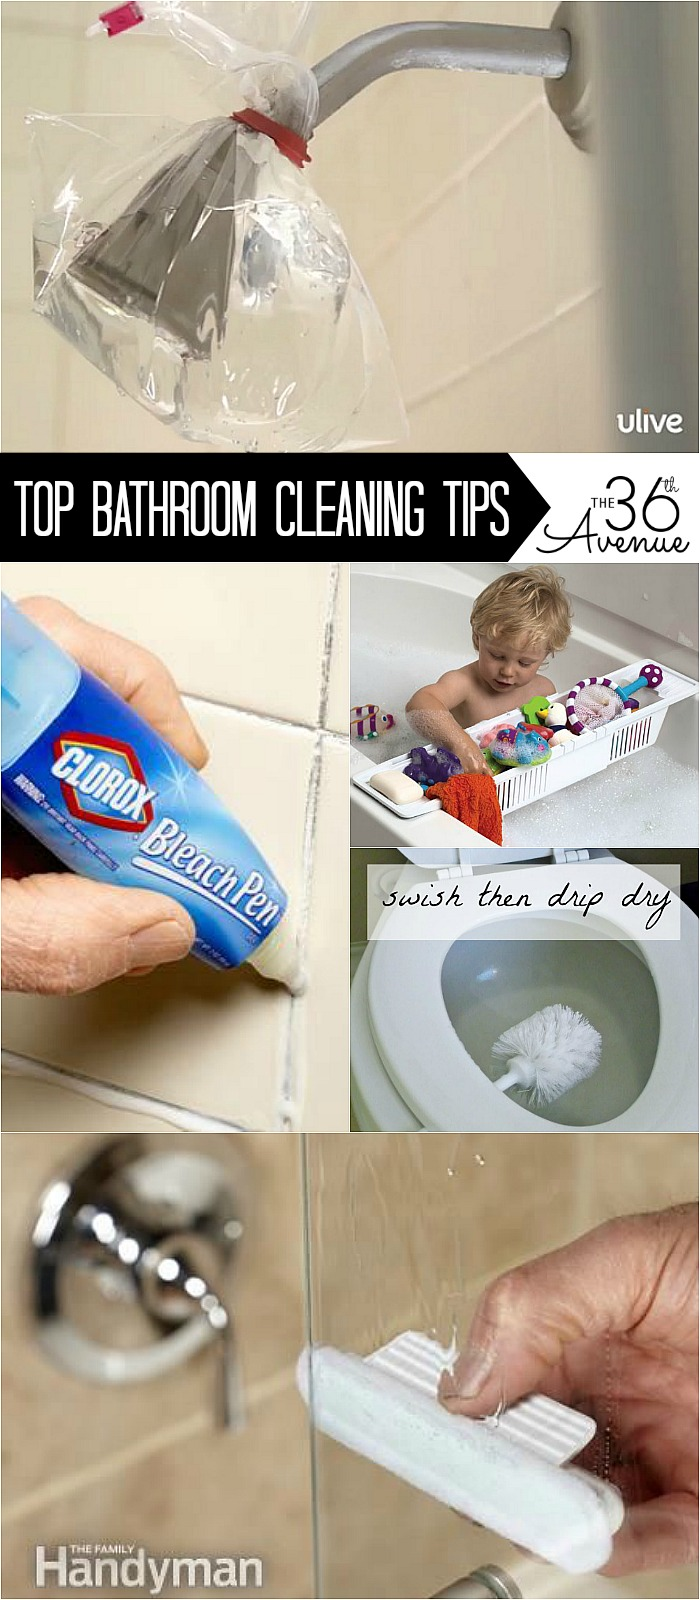 The 36th avenue top 10 closet organization ideas the for Best cleaner for bathroom